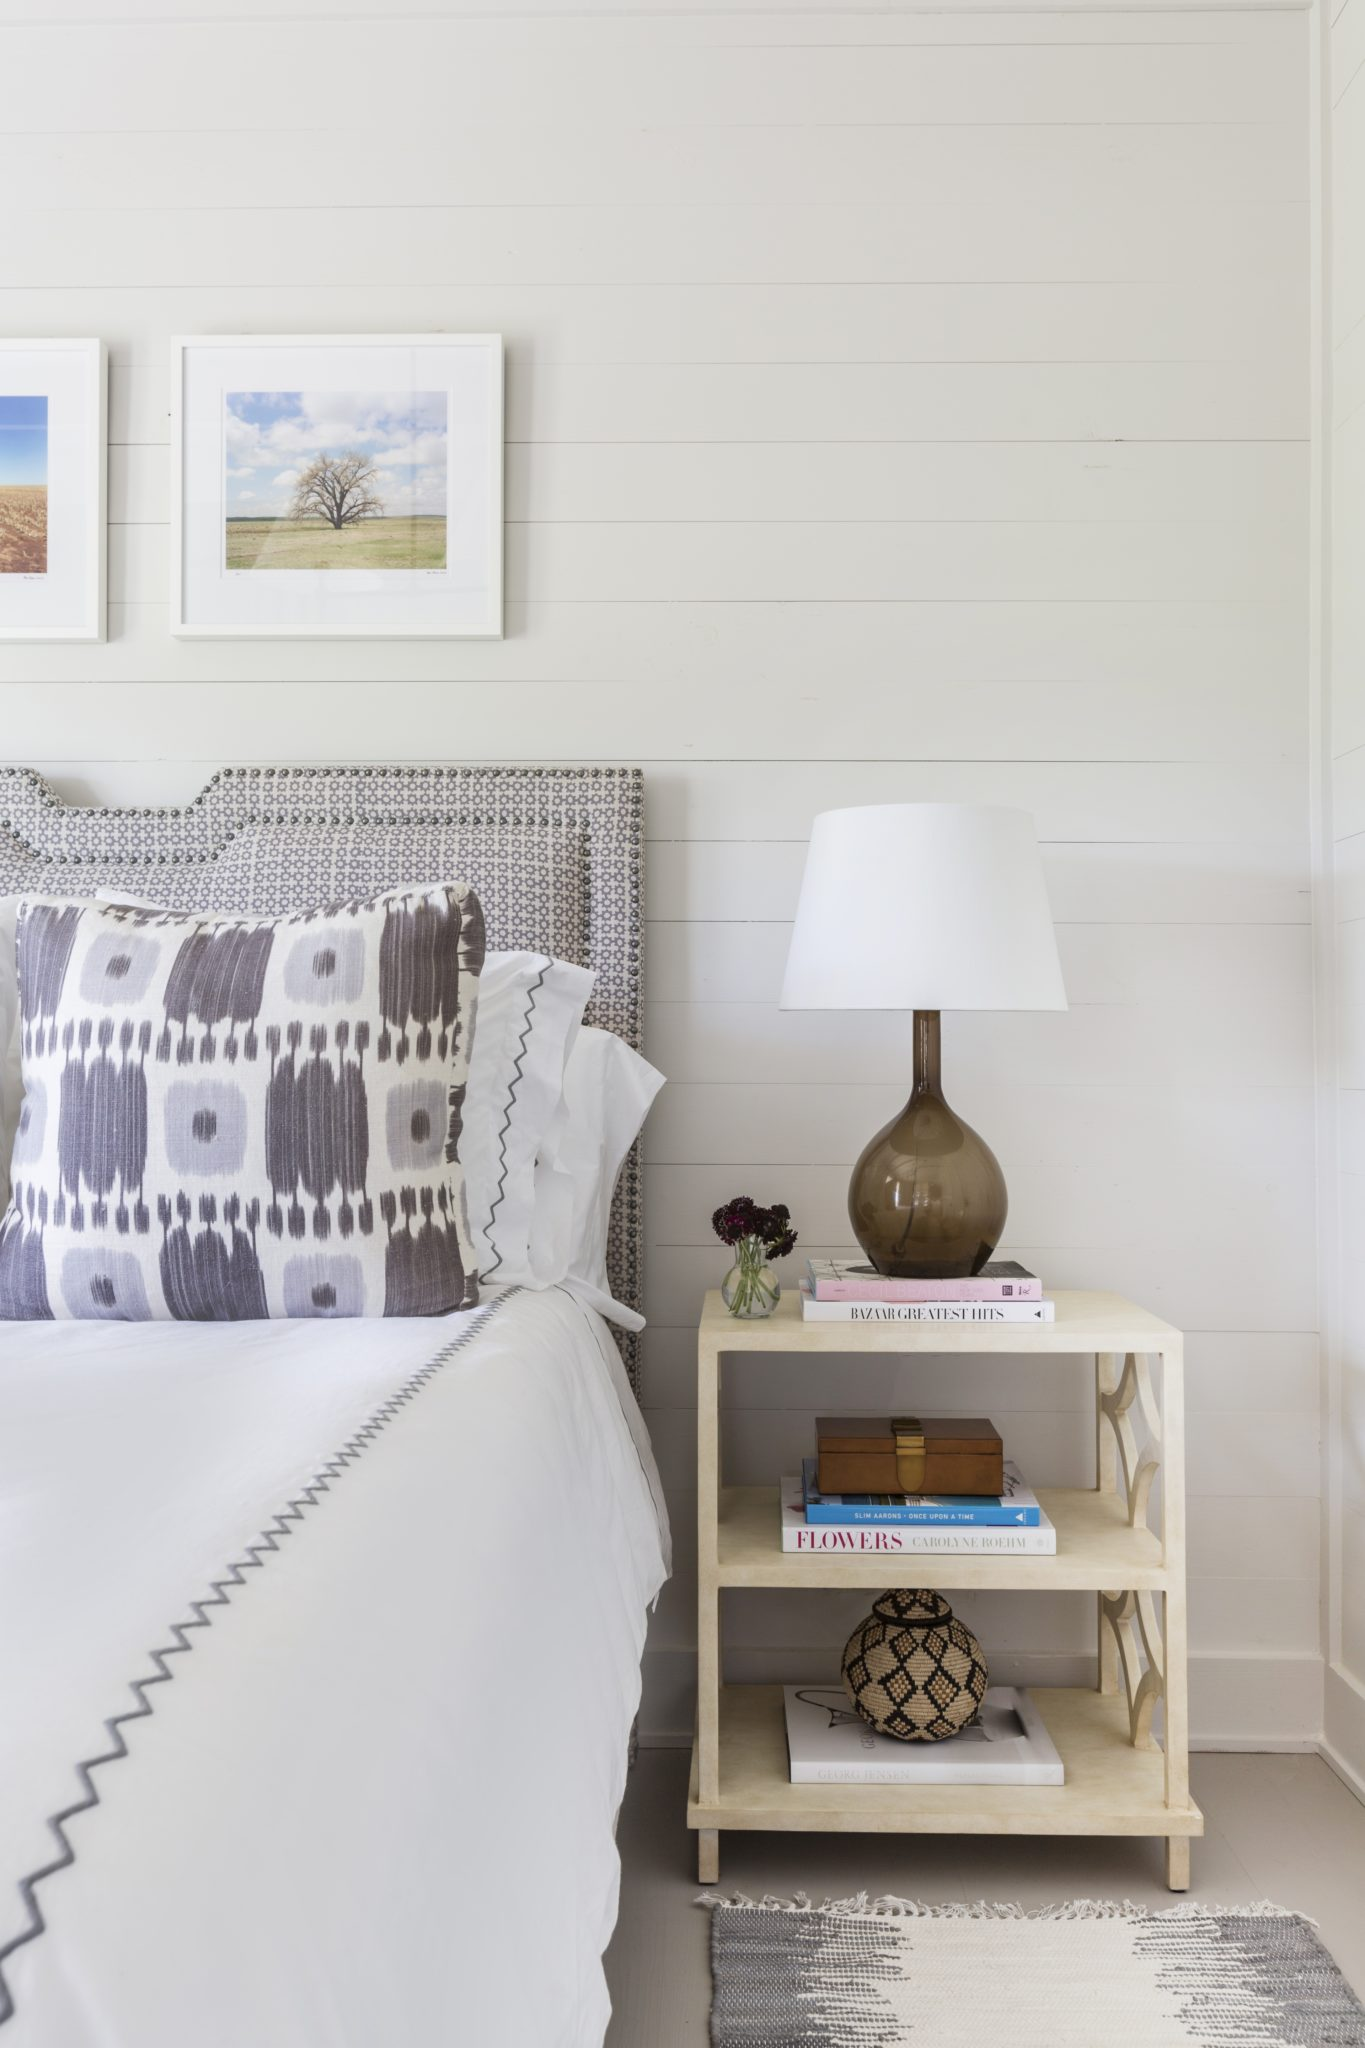 Farmhouse bedroom design by Courtney Hill Interiors